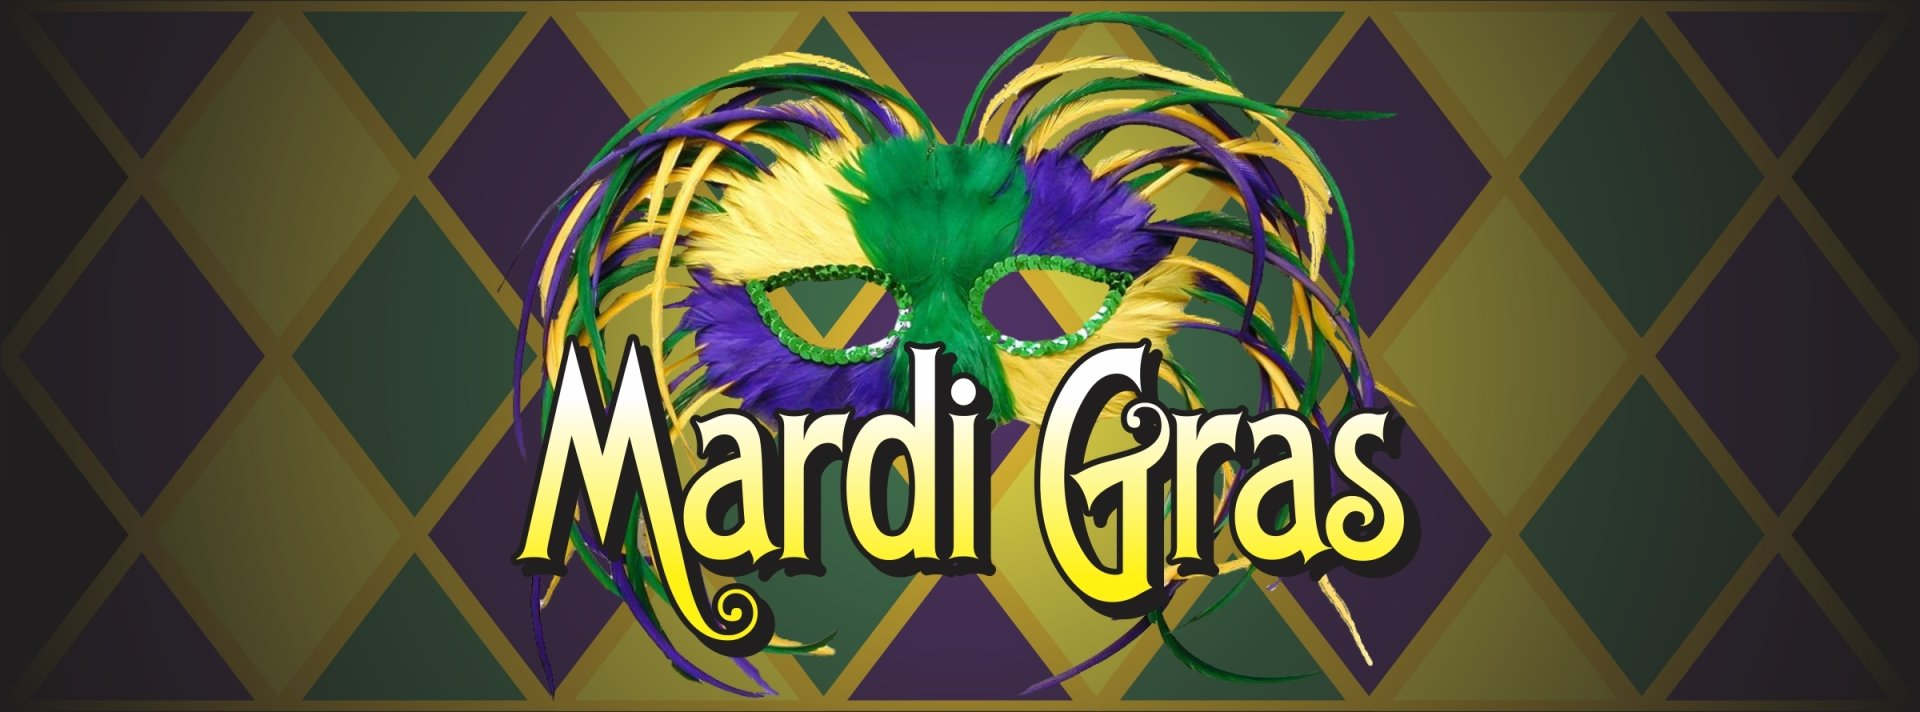 Holiday - Mardi Gras  Wallpaper